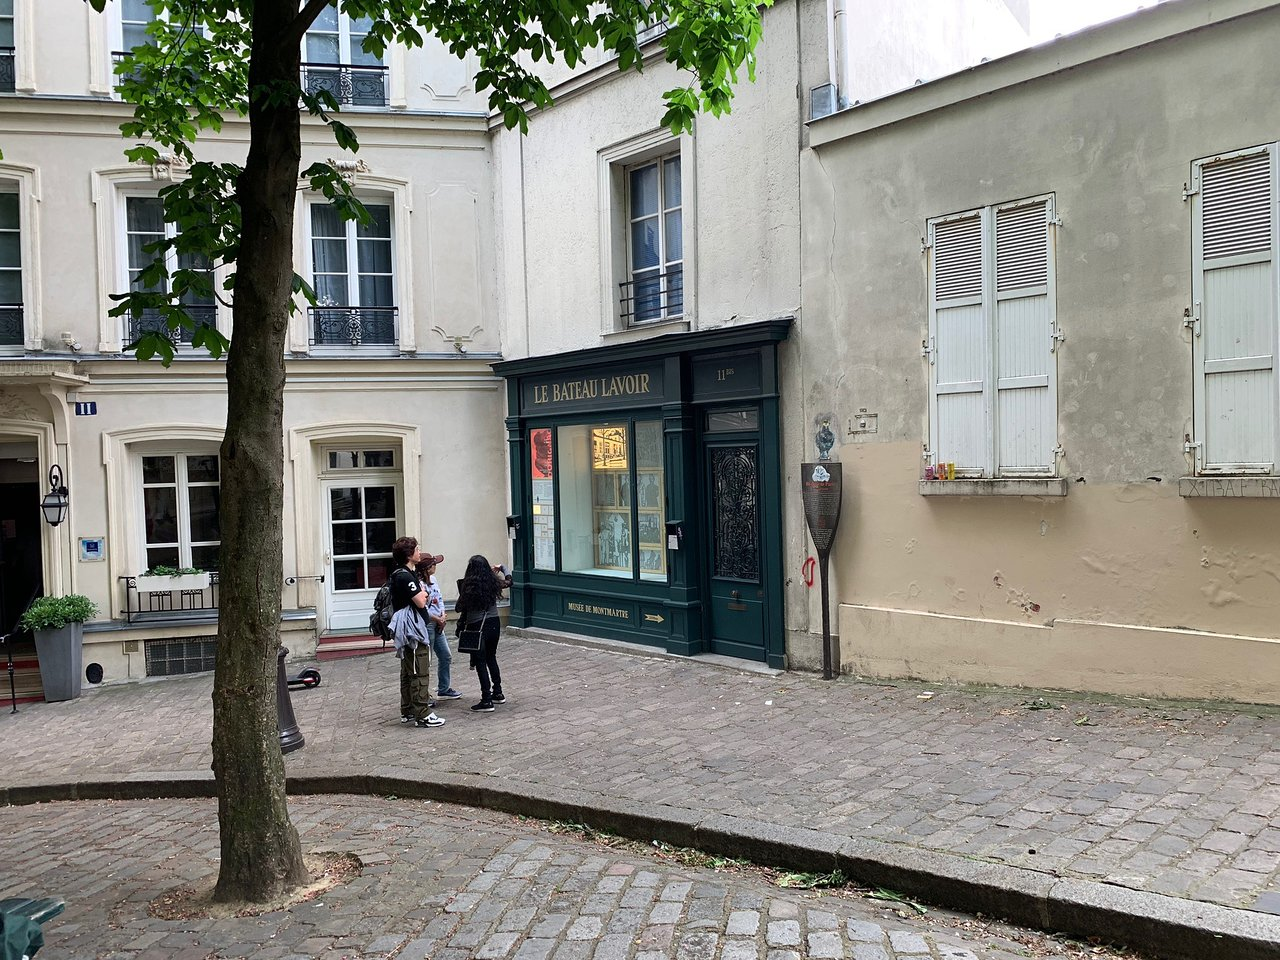 Le Bateau Lavoir Paris 2020 All You Need To Know Before You Go